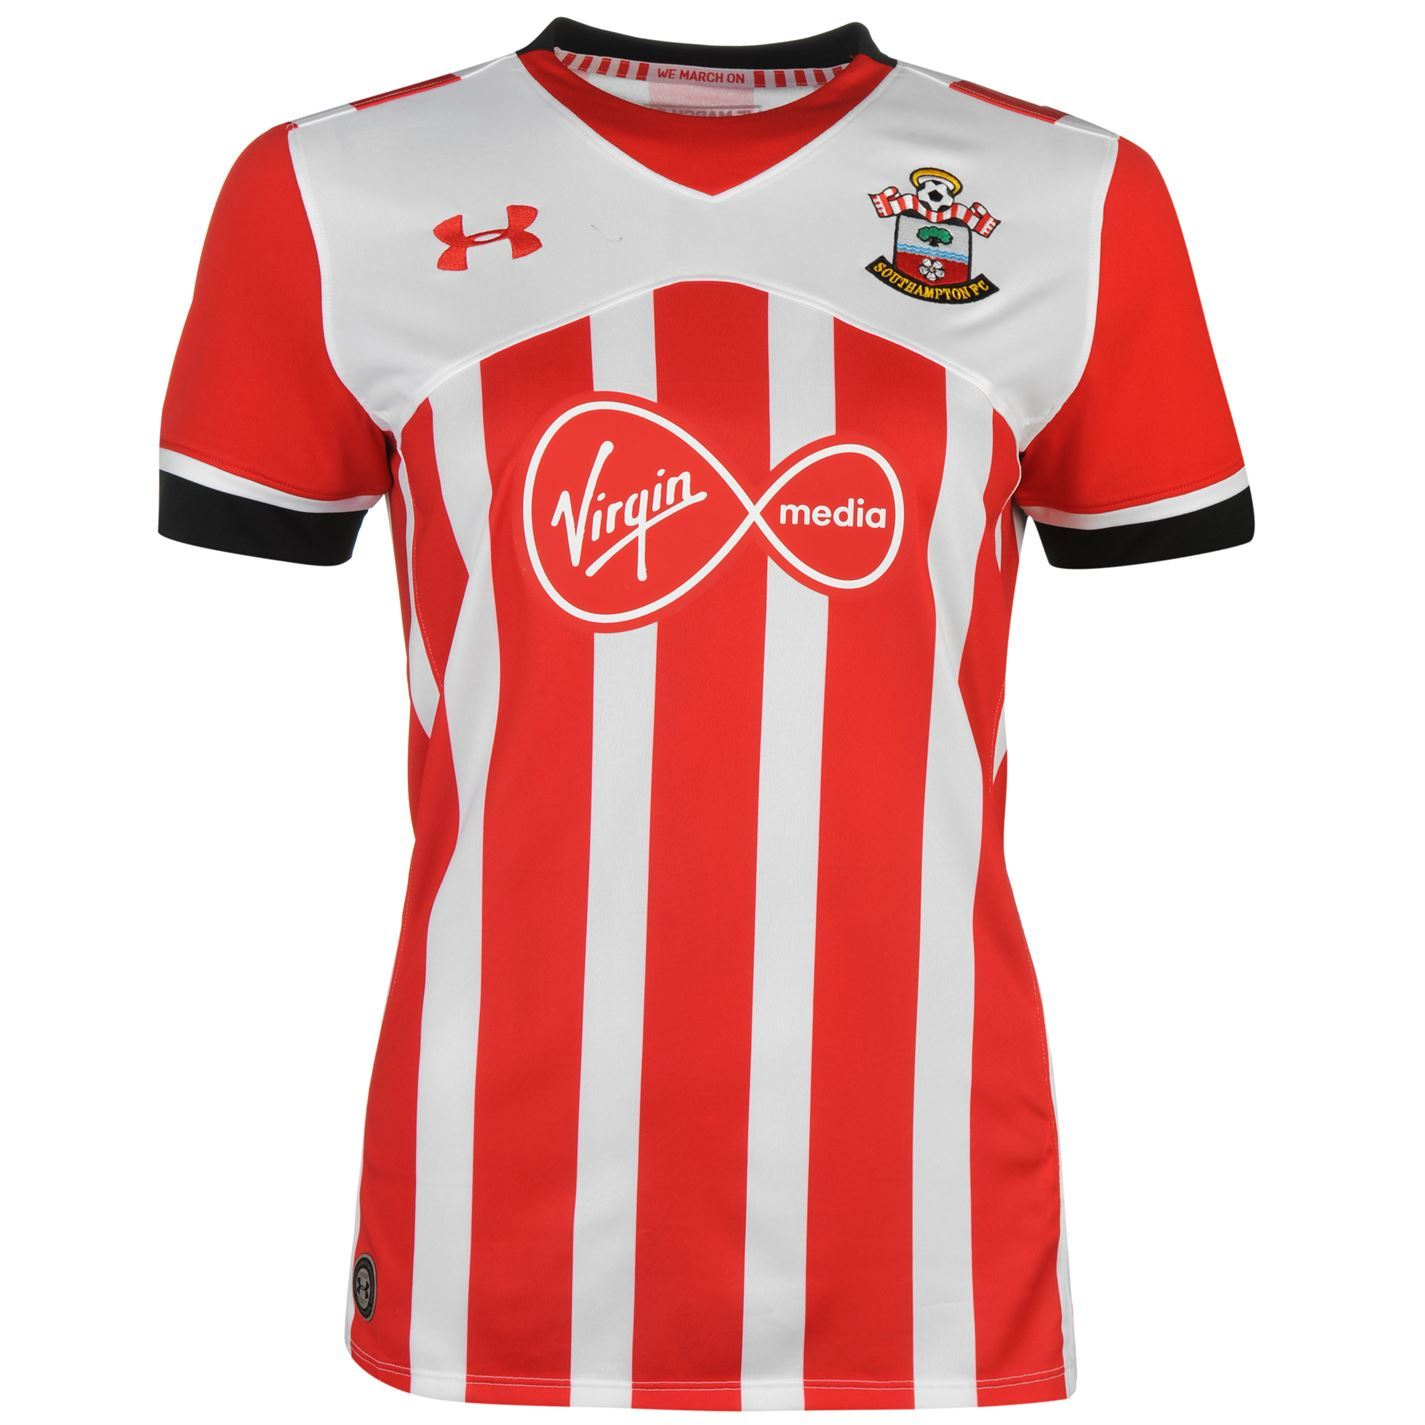 Under armour southampton fc home jersey 2016 2017 womens for Under armor football shirts